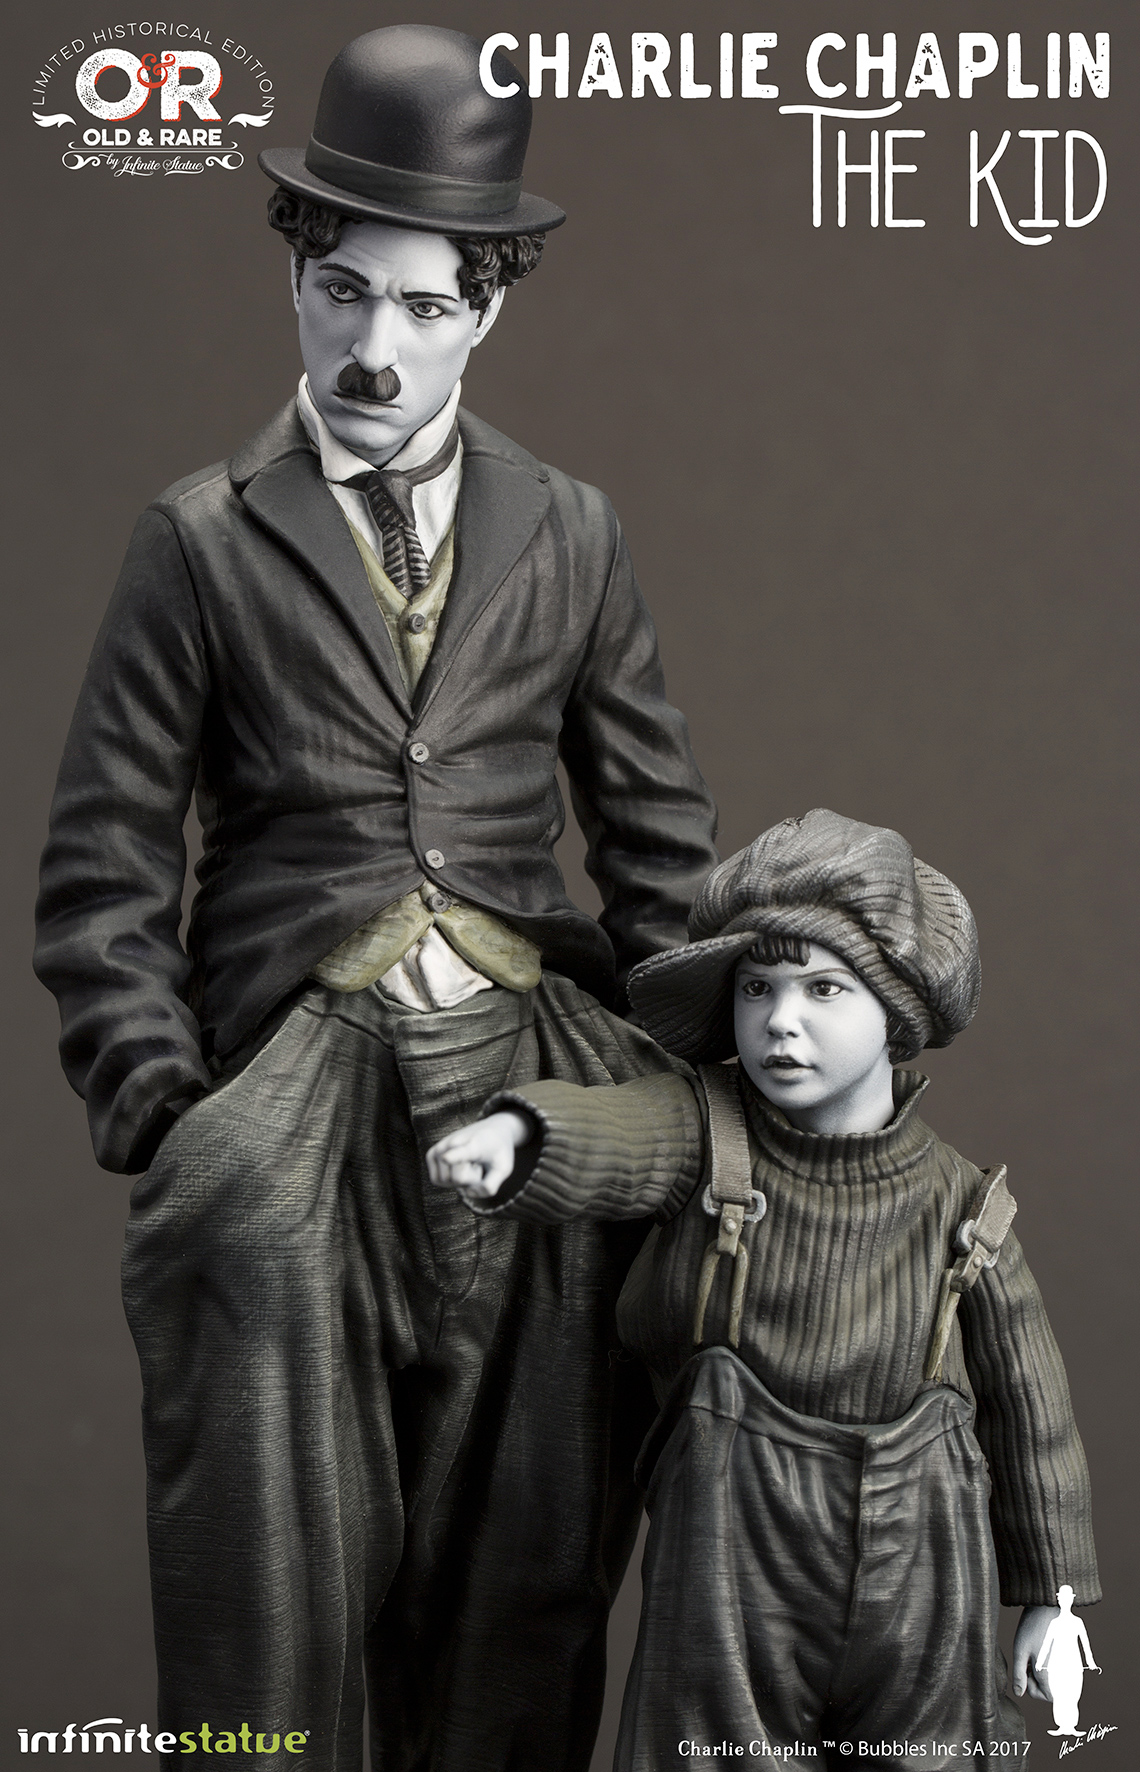 Charlie-Chaplin-O-Garoto-The-Kid-Infinite-Statue-02